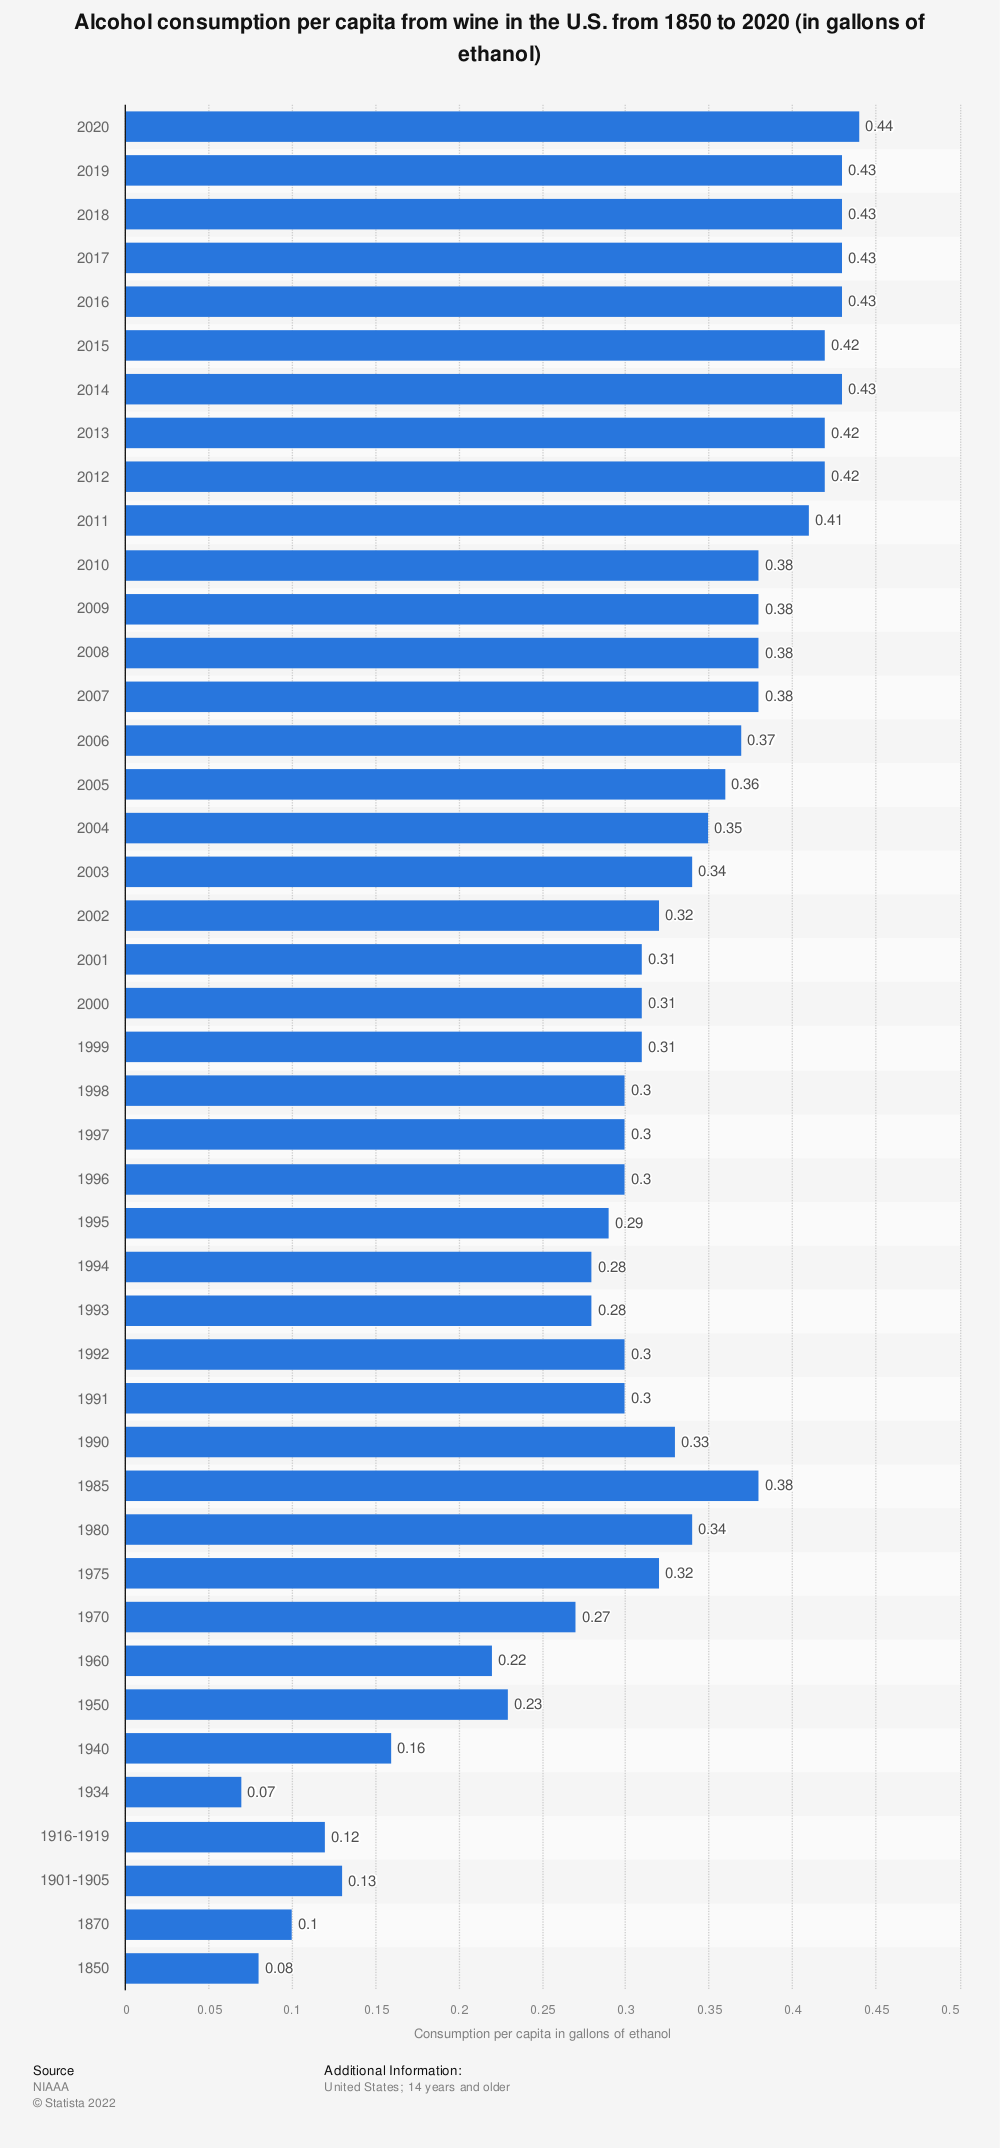 Statistic: Alcohol consumption per capita from wine in the U.S. from 1850 to 2018 (in gallons of ethanol) | Statista